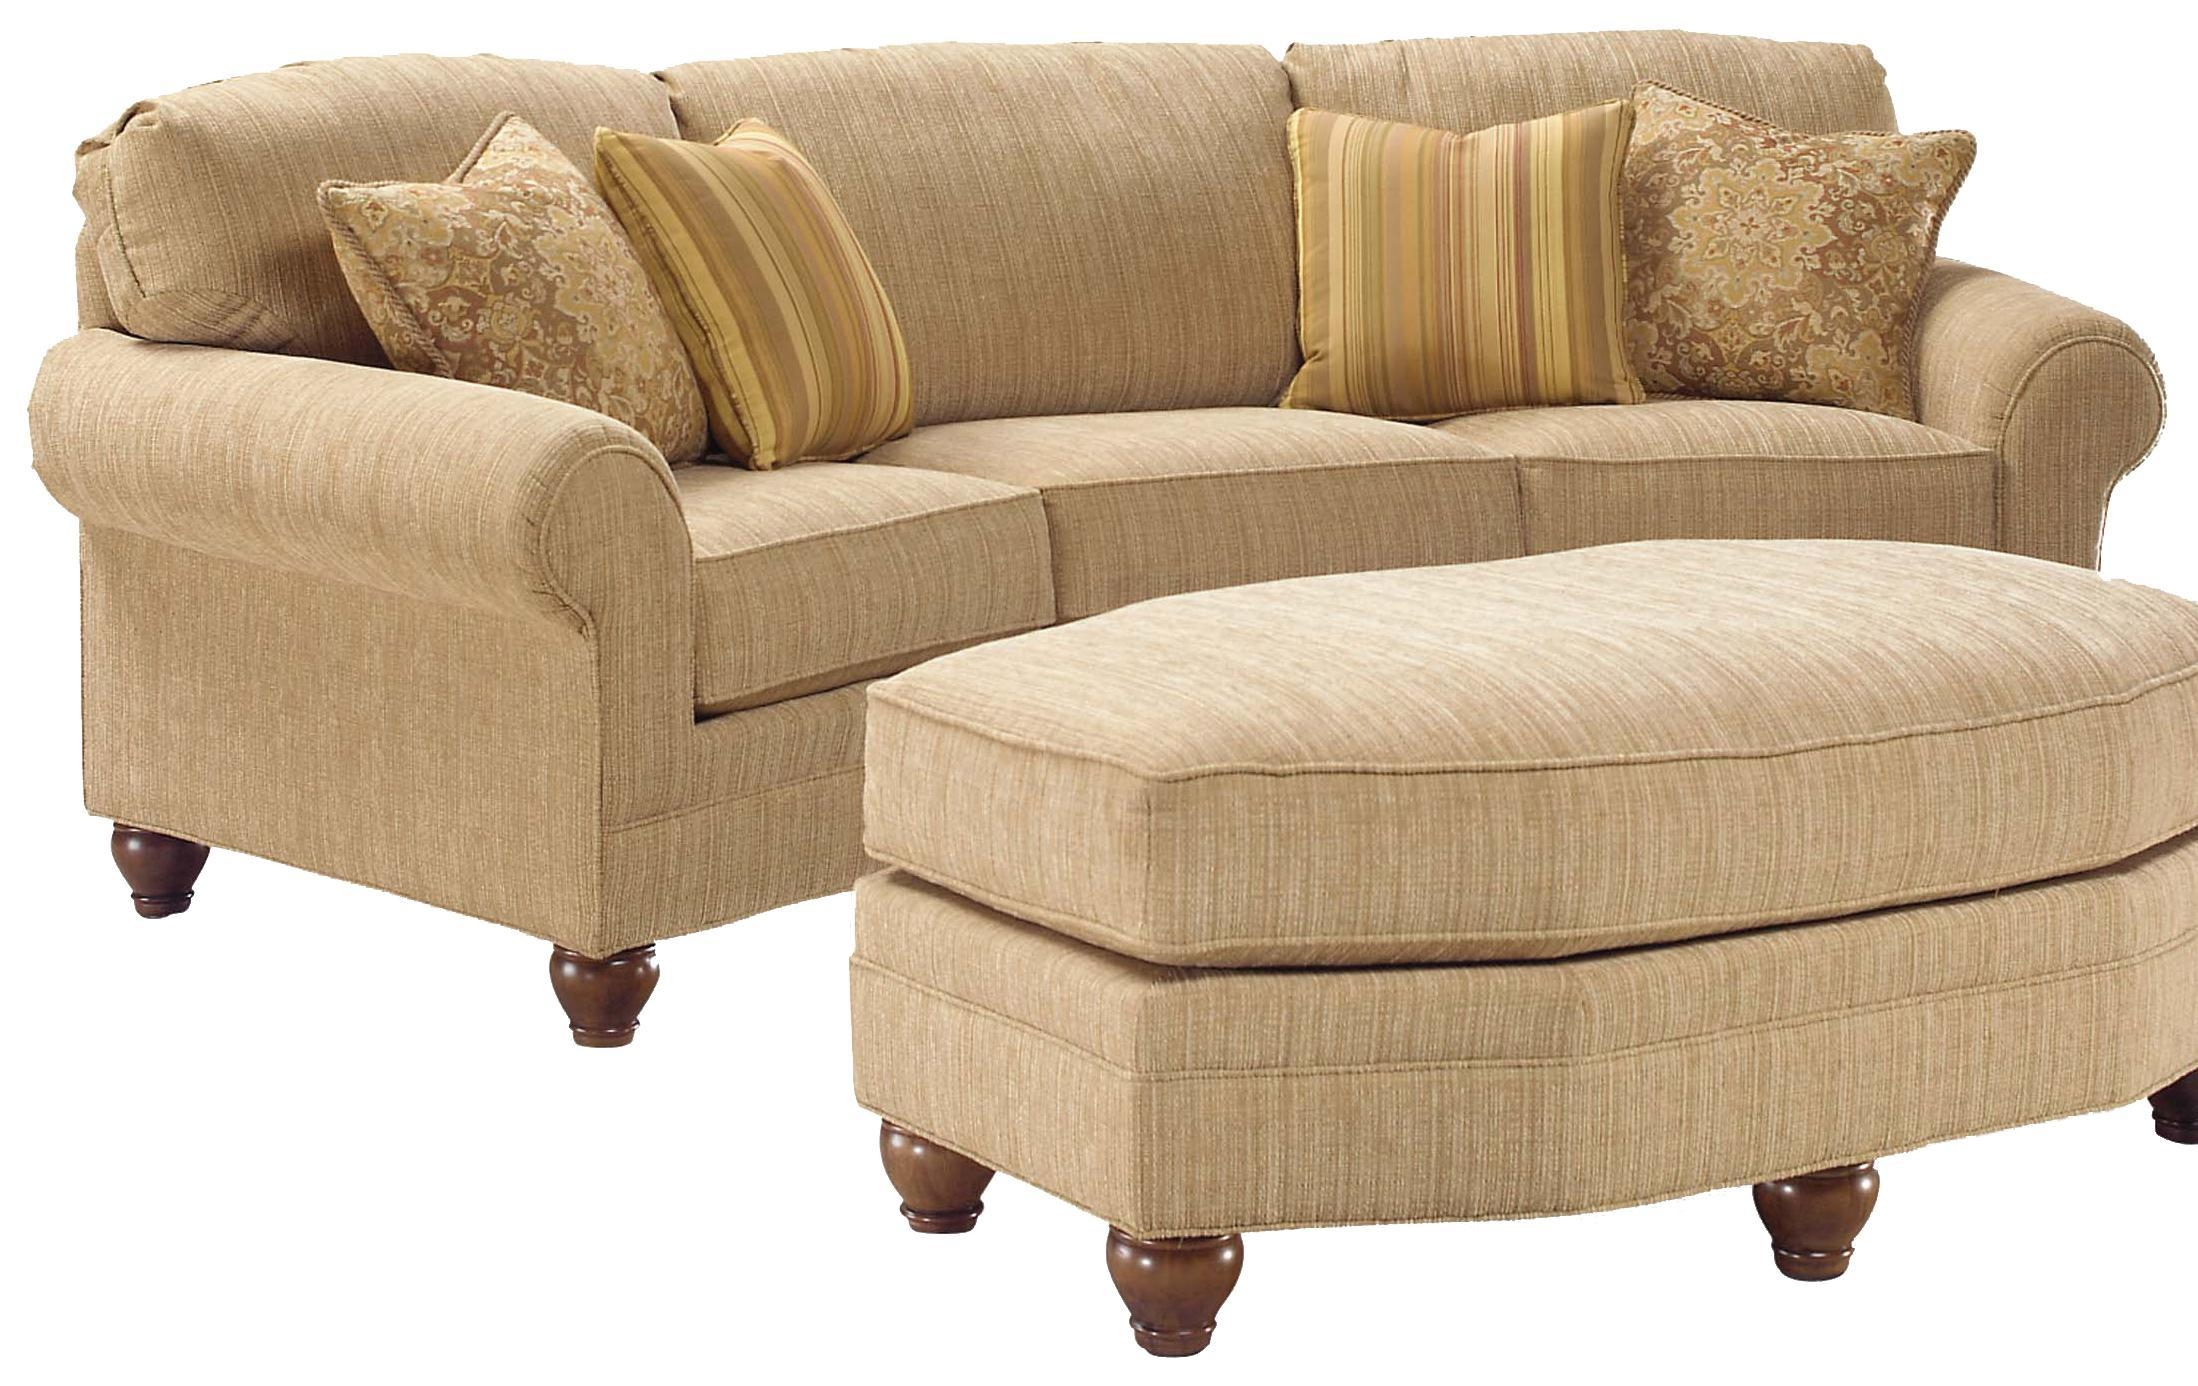 Furniture: Luxury Curved Sectional Sofa For Living Room Furniture Intended For Circular Sofa Chairs (View 18 of 20)